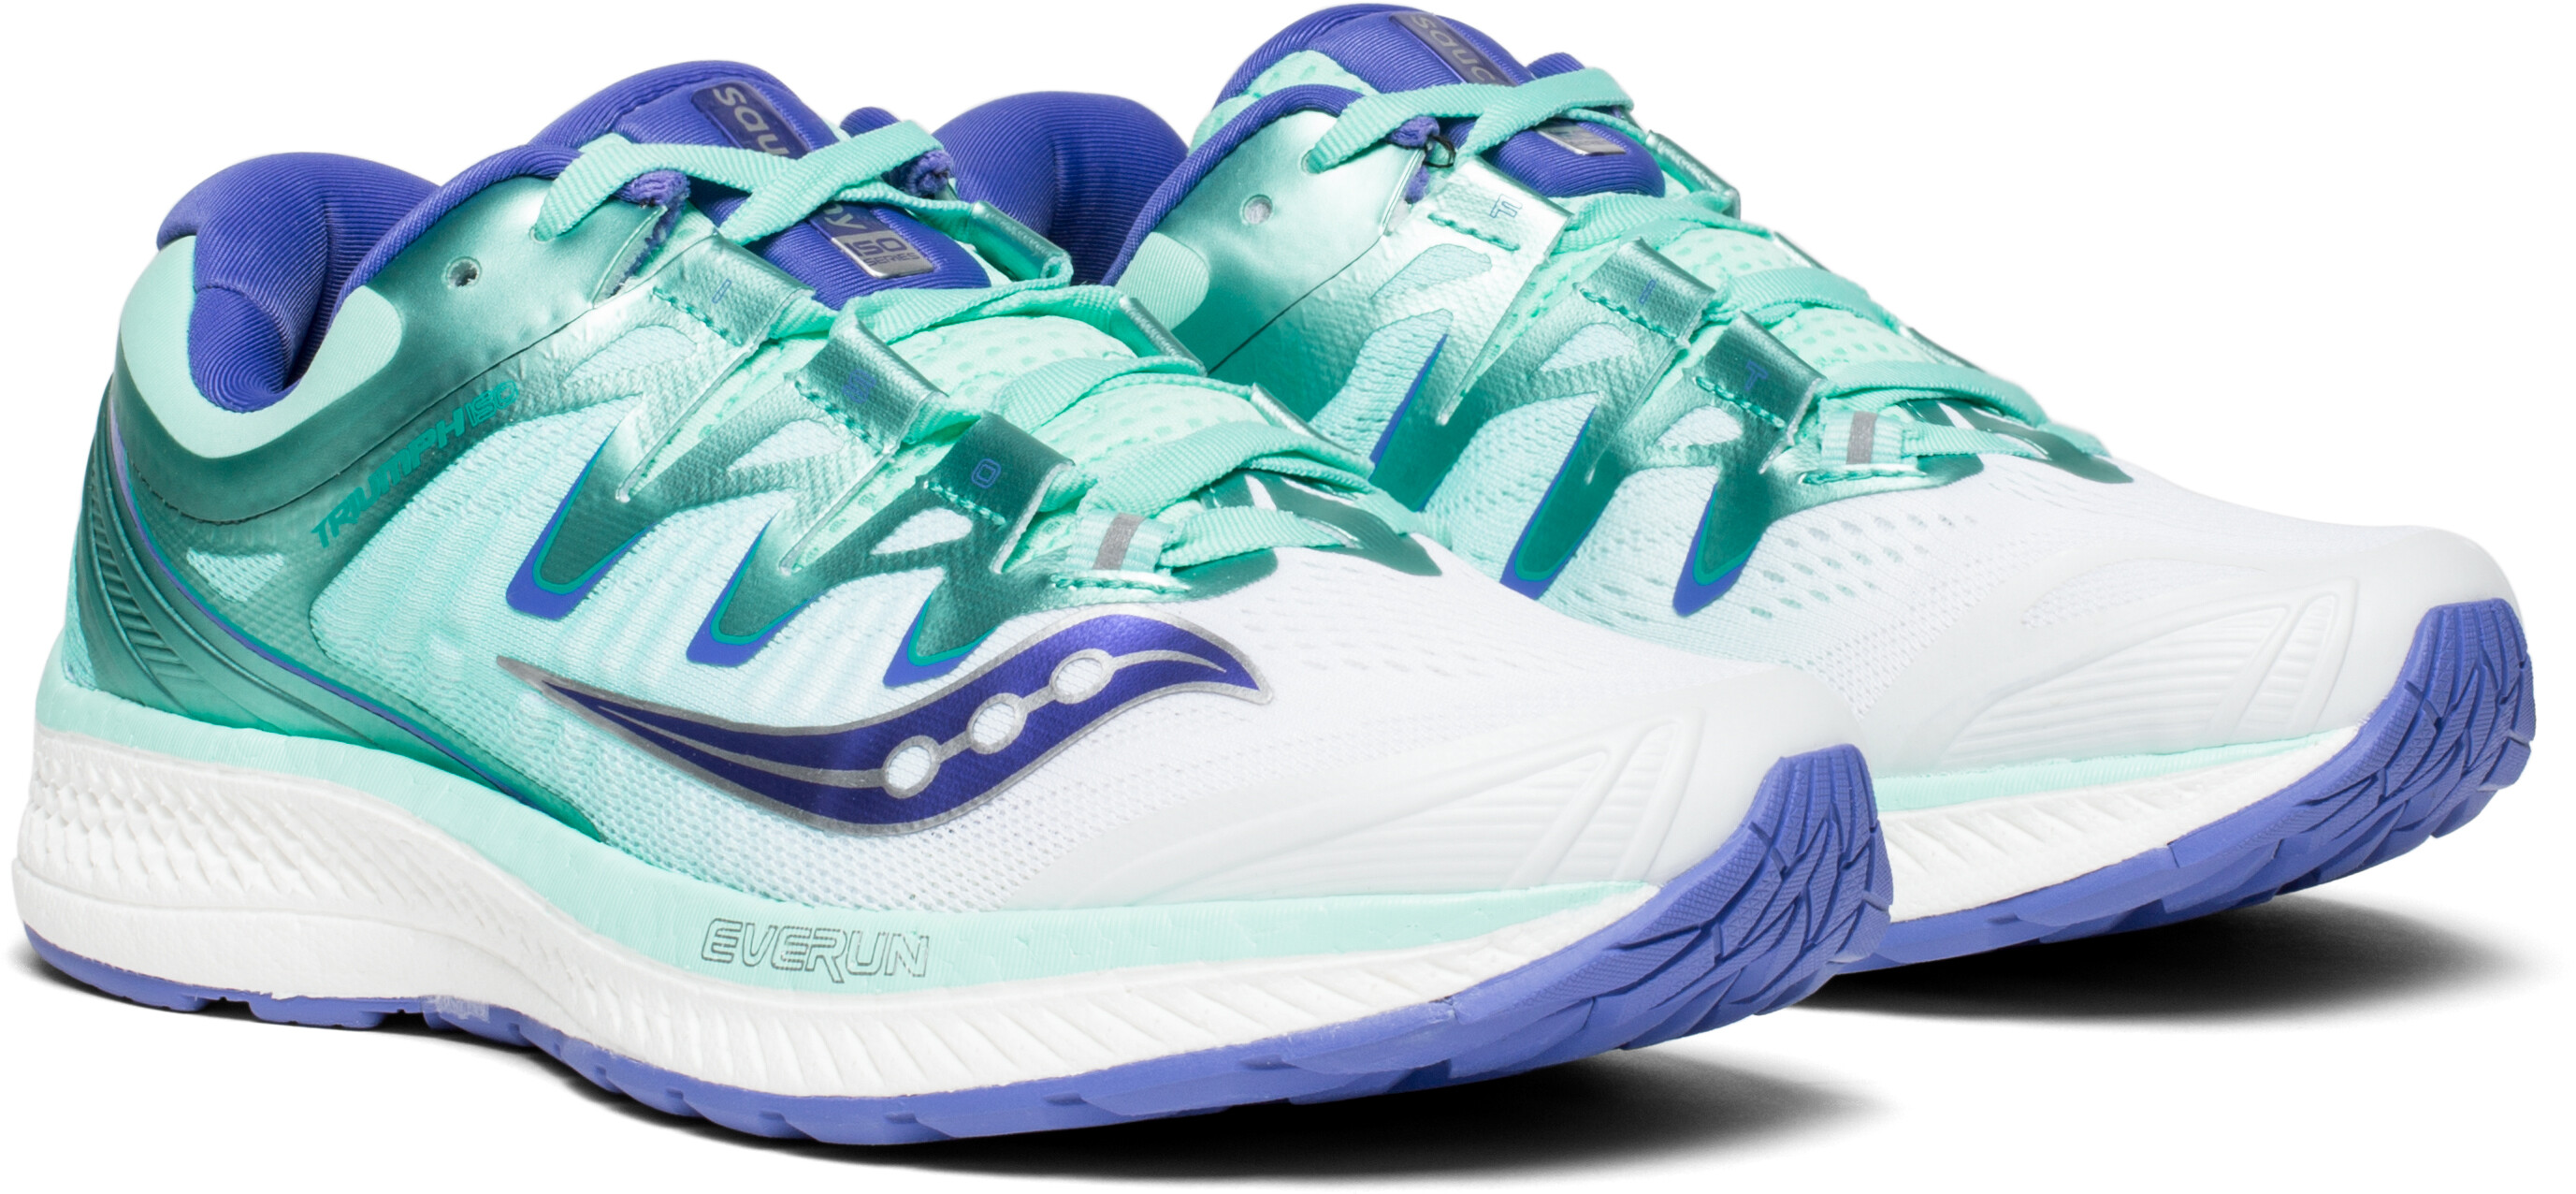 b45cda96387 saucony Triumph ISO 4 - Chaussures running Femme - blanc turquoise ...